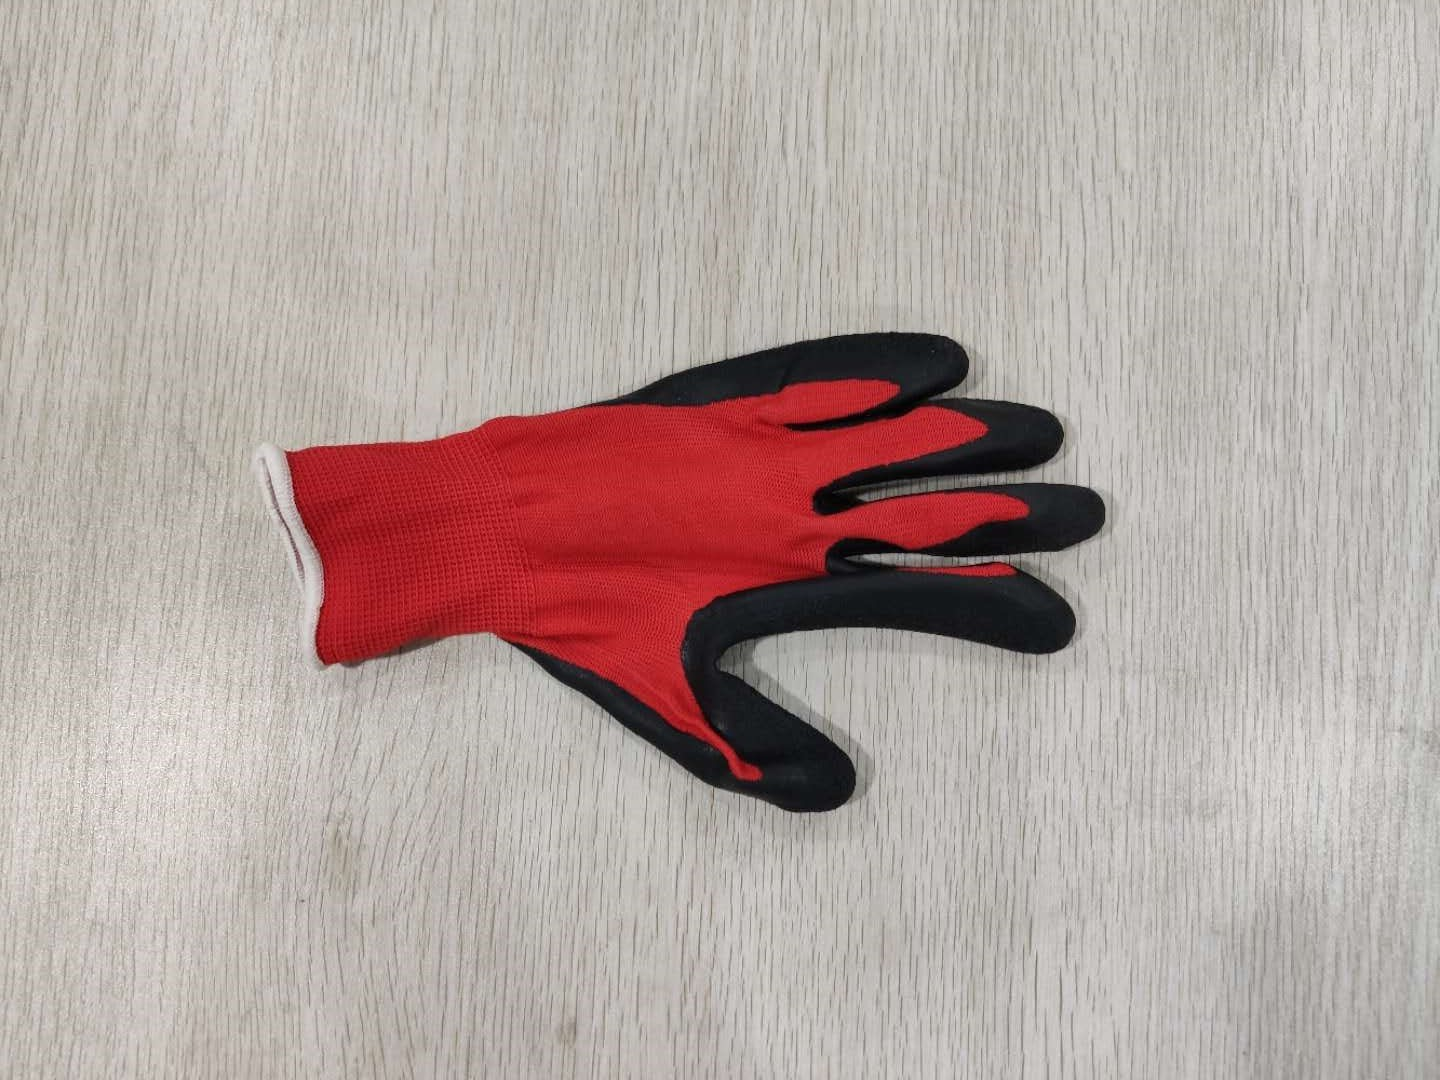 42 Grams Gardening Machines Working Glove For Labor Nylon Material Nitrile Glove